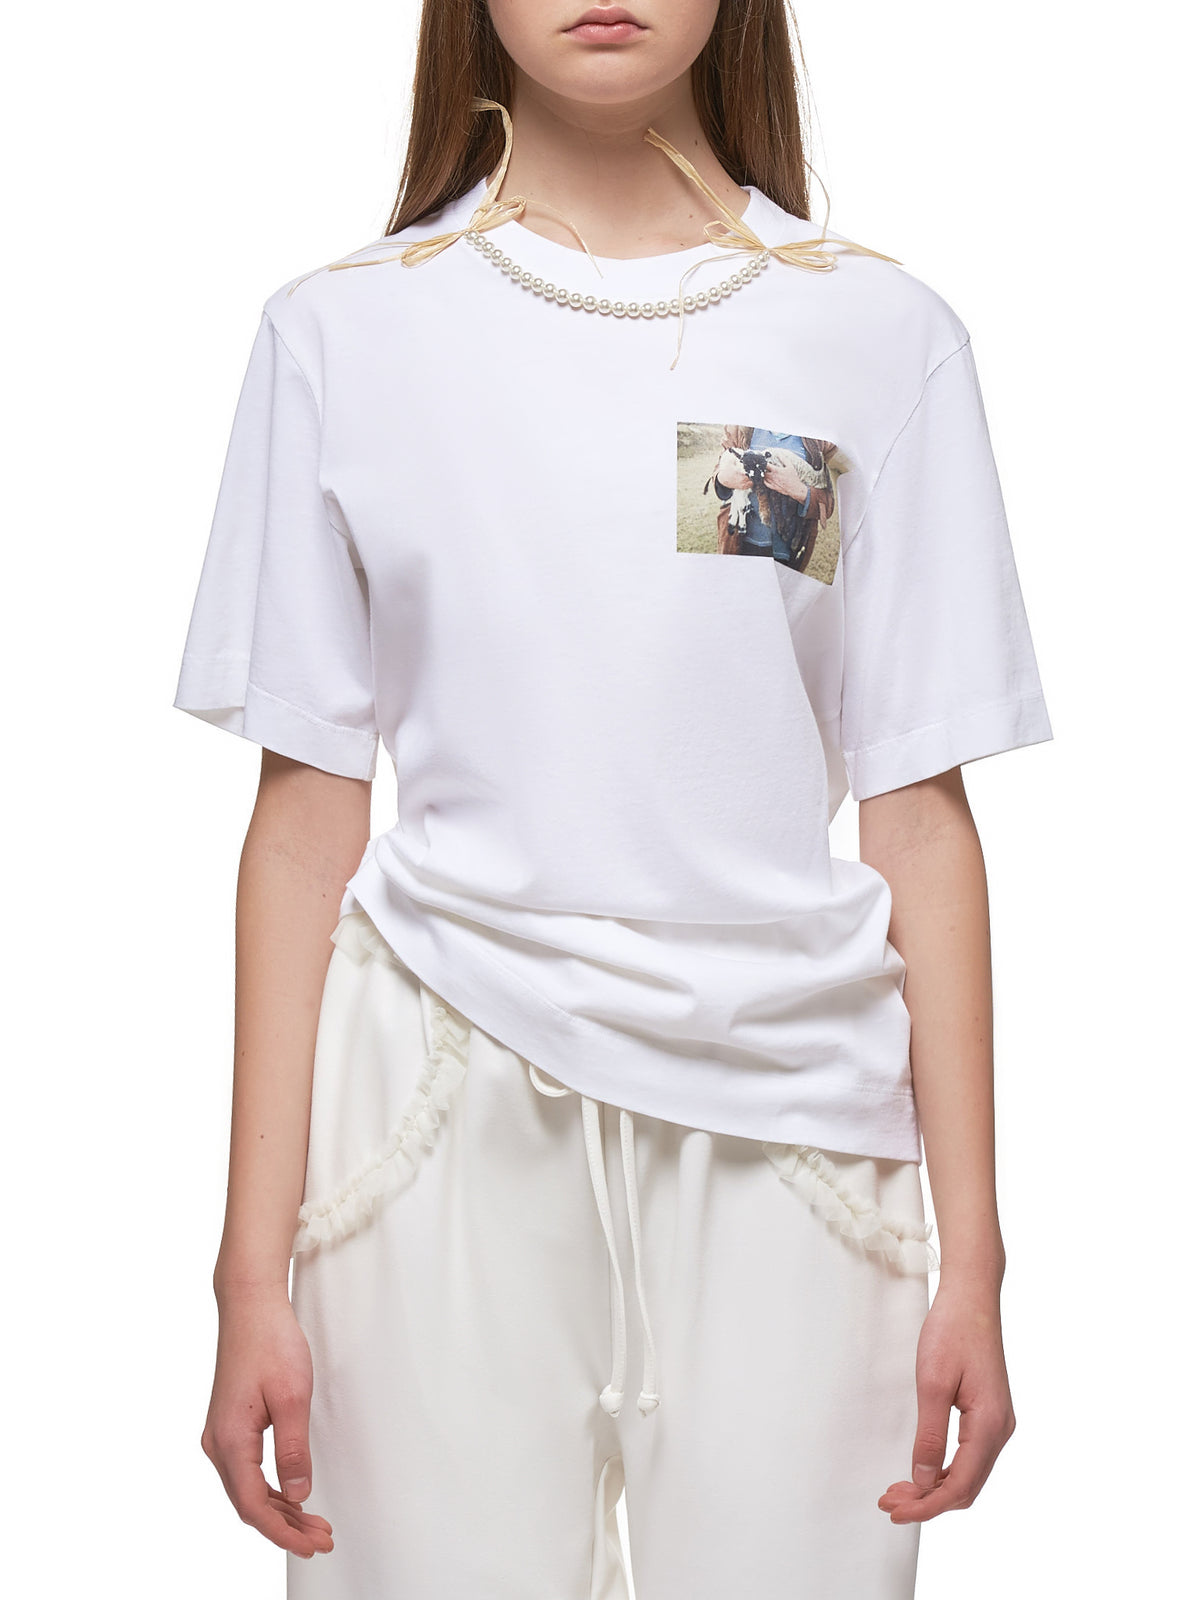 Lamb Print T-Shirt (TS268-1B-0557-WHITE-NATURAL)